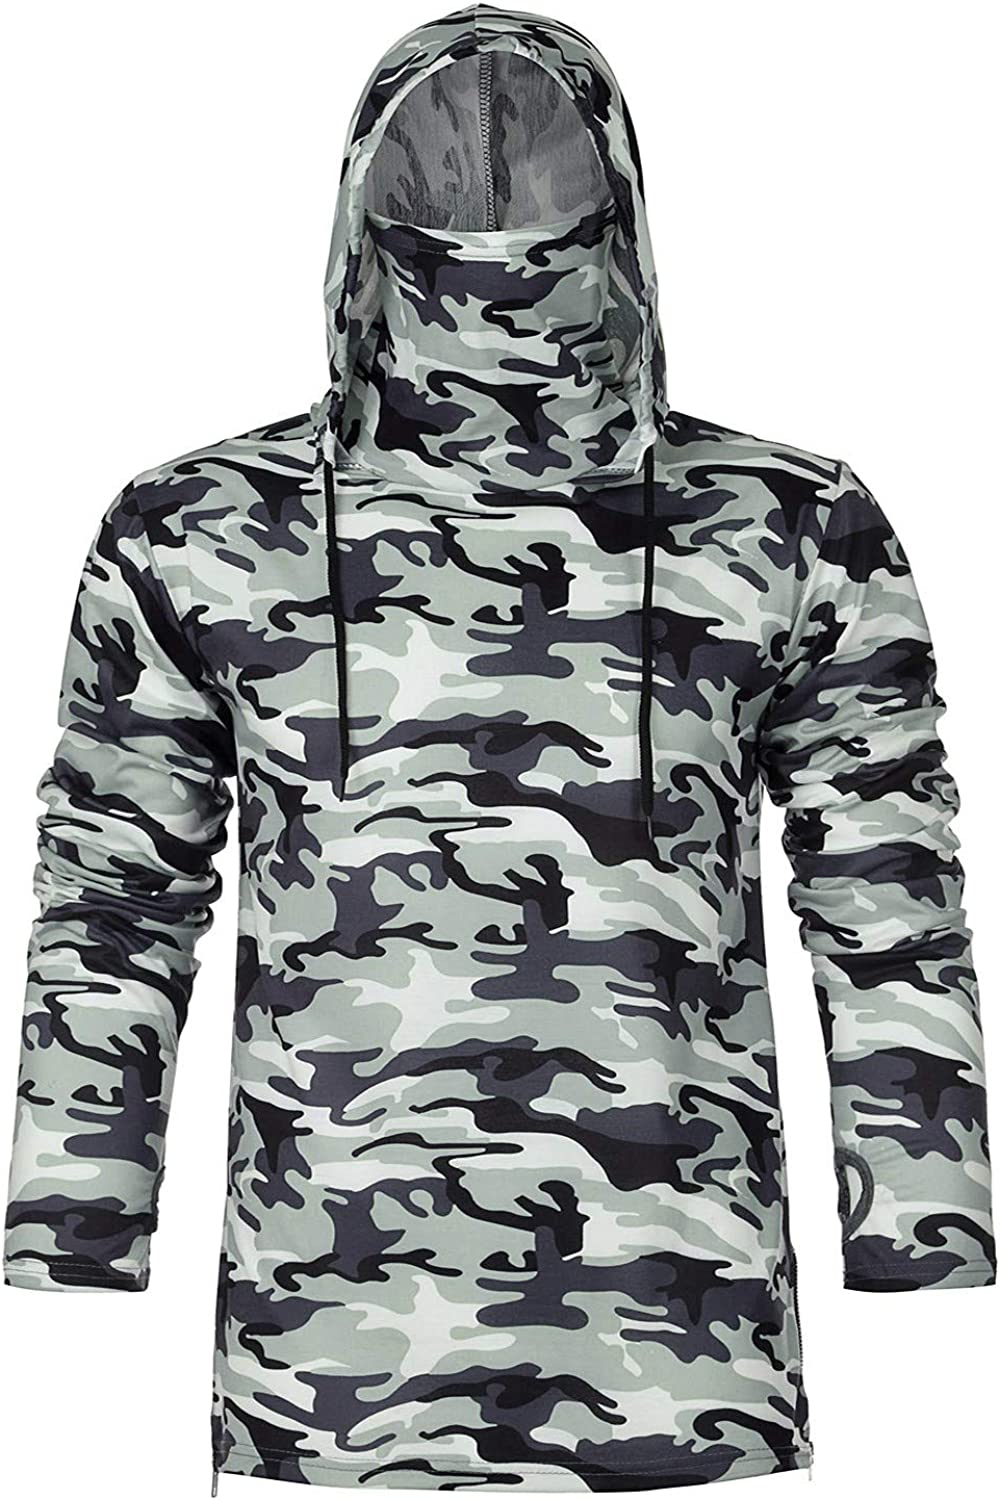 Mens Athletic Hipster Camouflage-Mask Fishing Hoodies Pullover Lightweight Long Sleeve Workout Sweatshirts